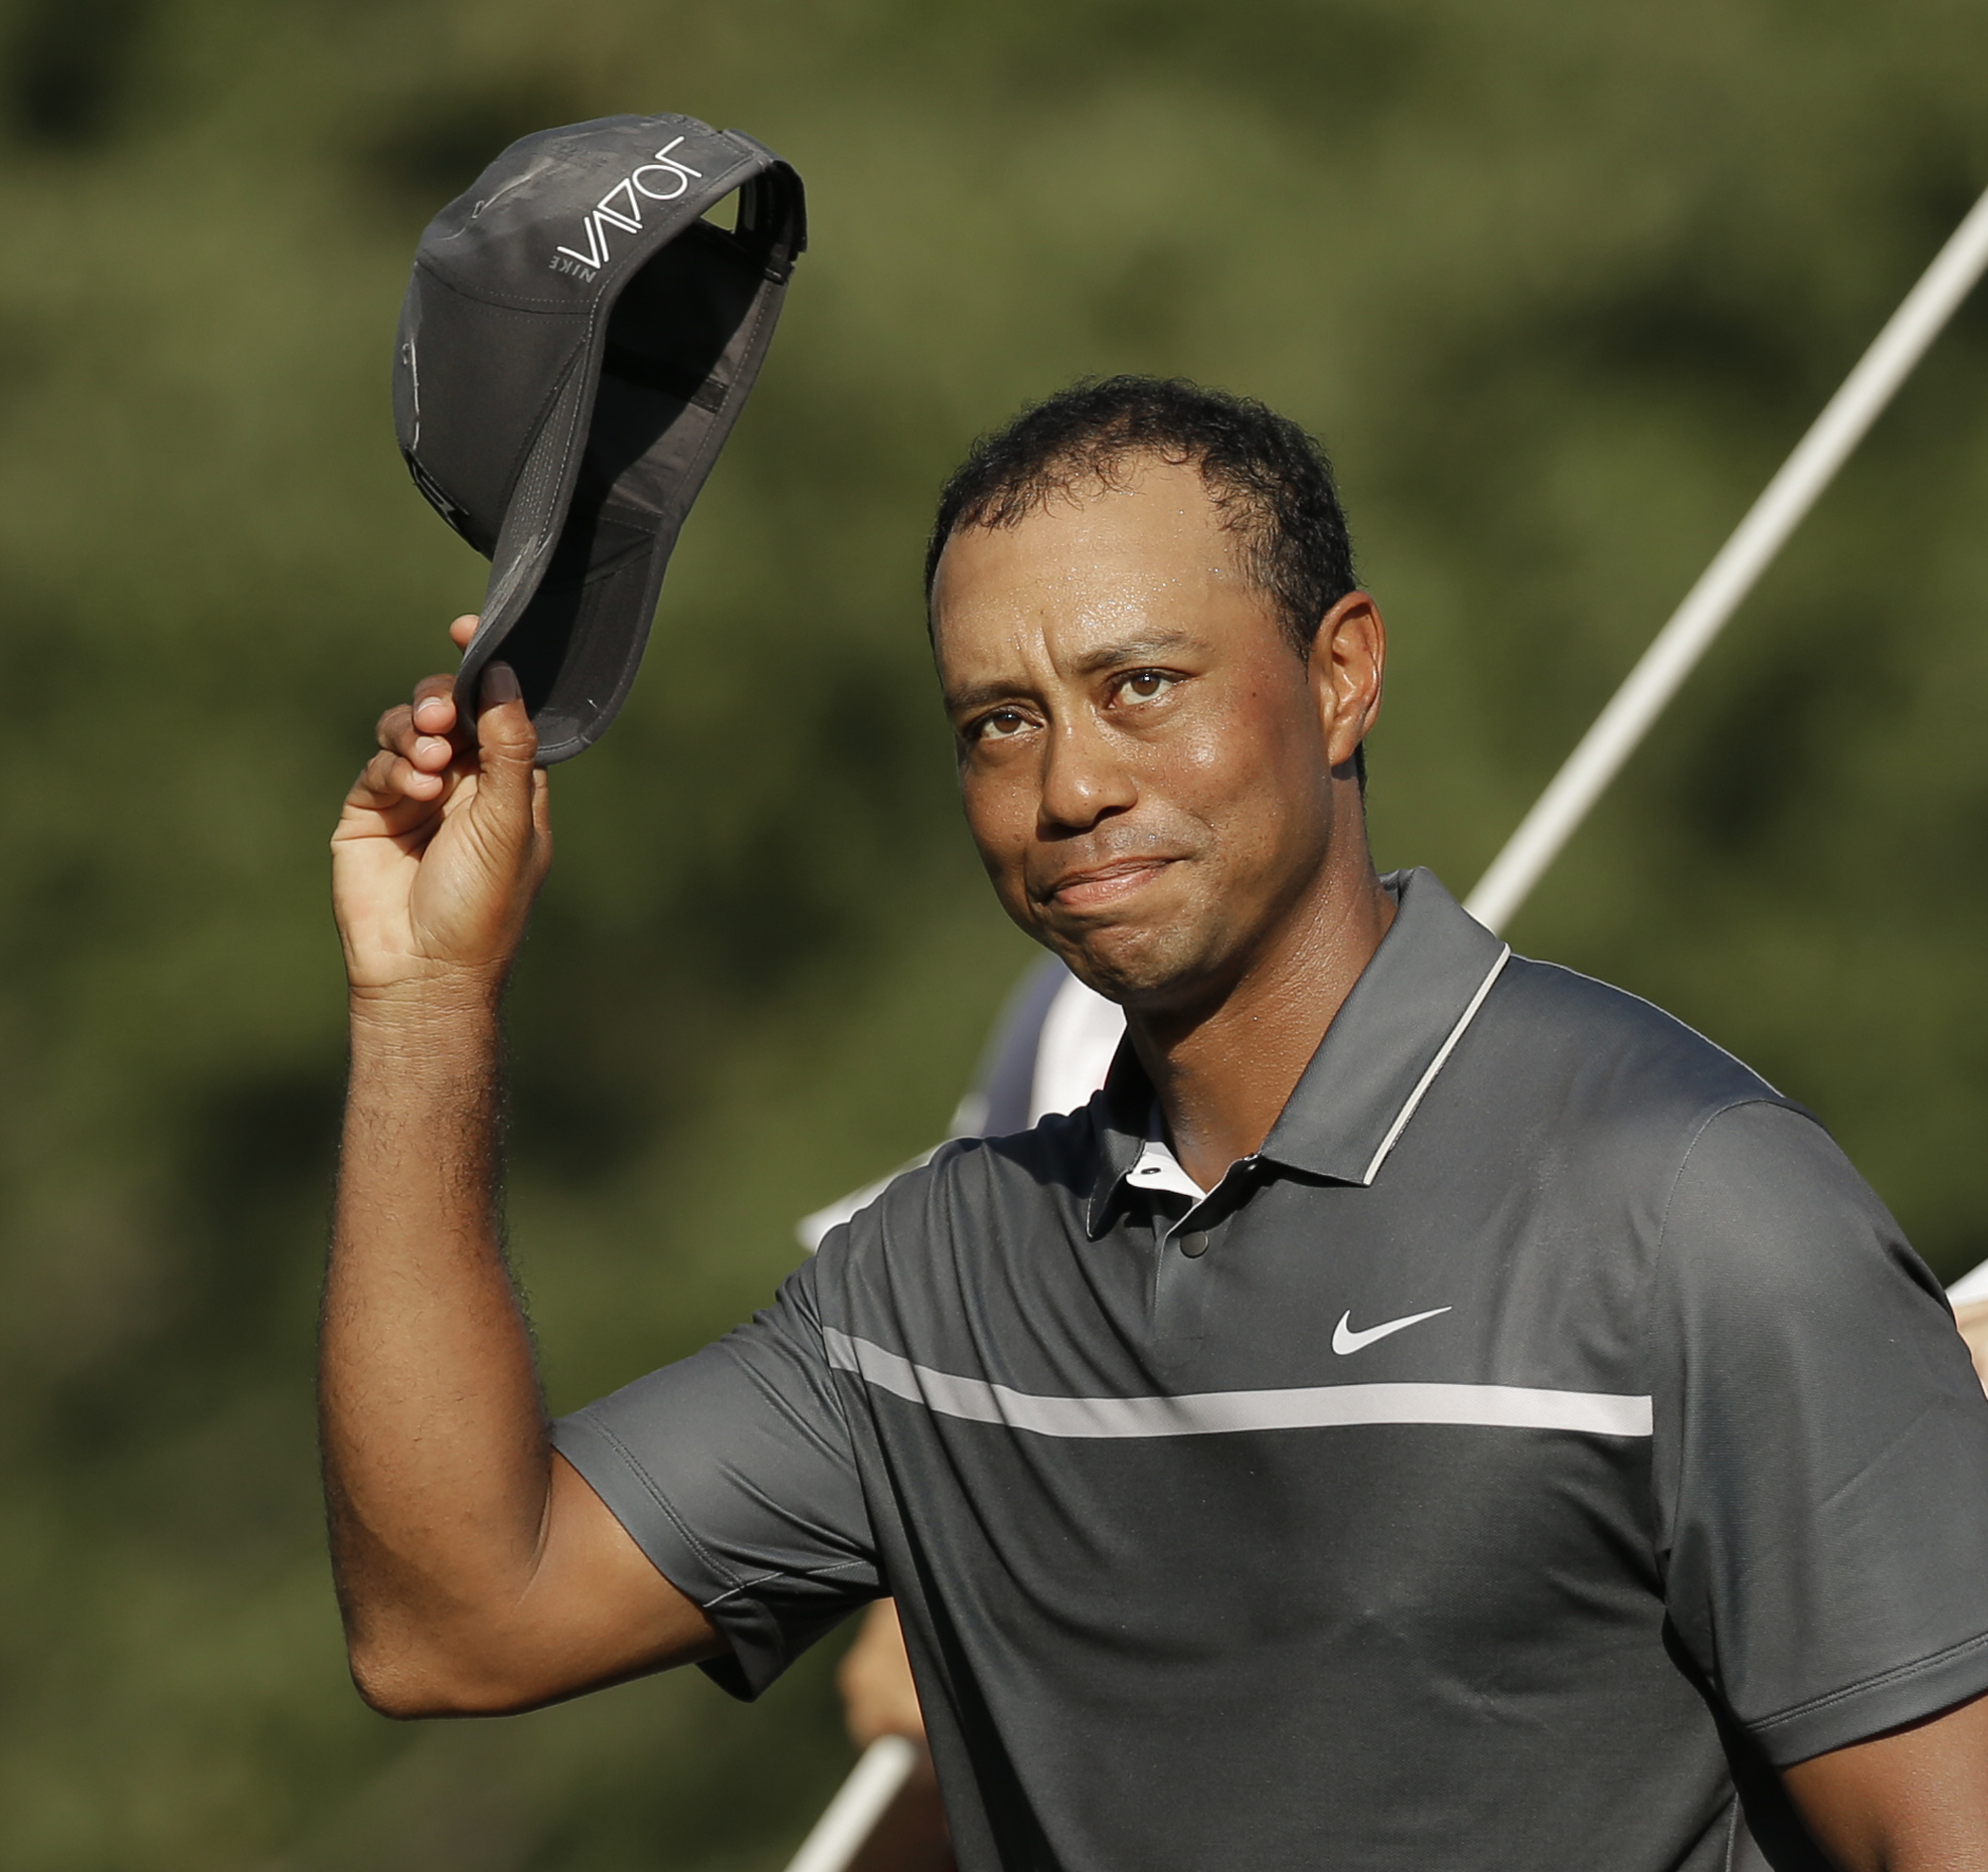 FILE - In this Aug. 21, 2015, file photo, Tiger Woods tips his hat to the crowd after finishing his round on the 18th hole during the second round of the Wyndham Championship golf tournament in Greensboro, N.C. Tiger Woods painted a bleak picture Tuesday,